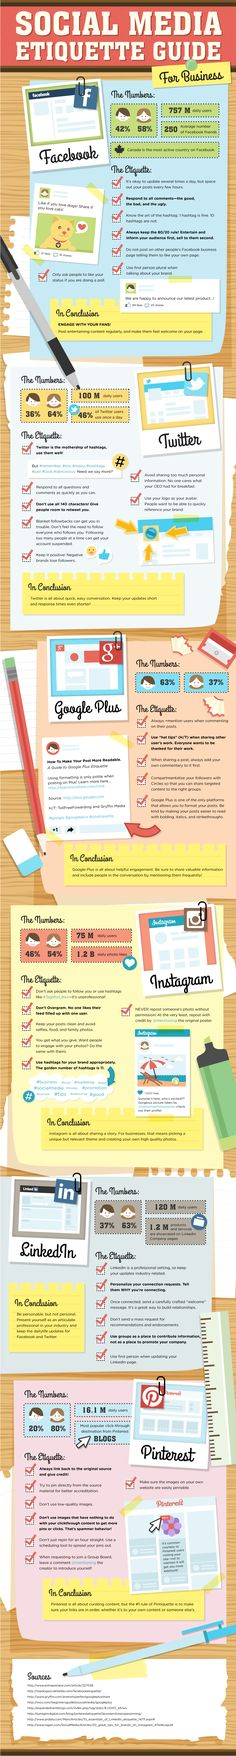 "Infographic: ""Social Media Etiquette Guide"" from Blog Success Journal. SocialMediaEtiquette-IG"